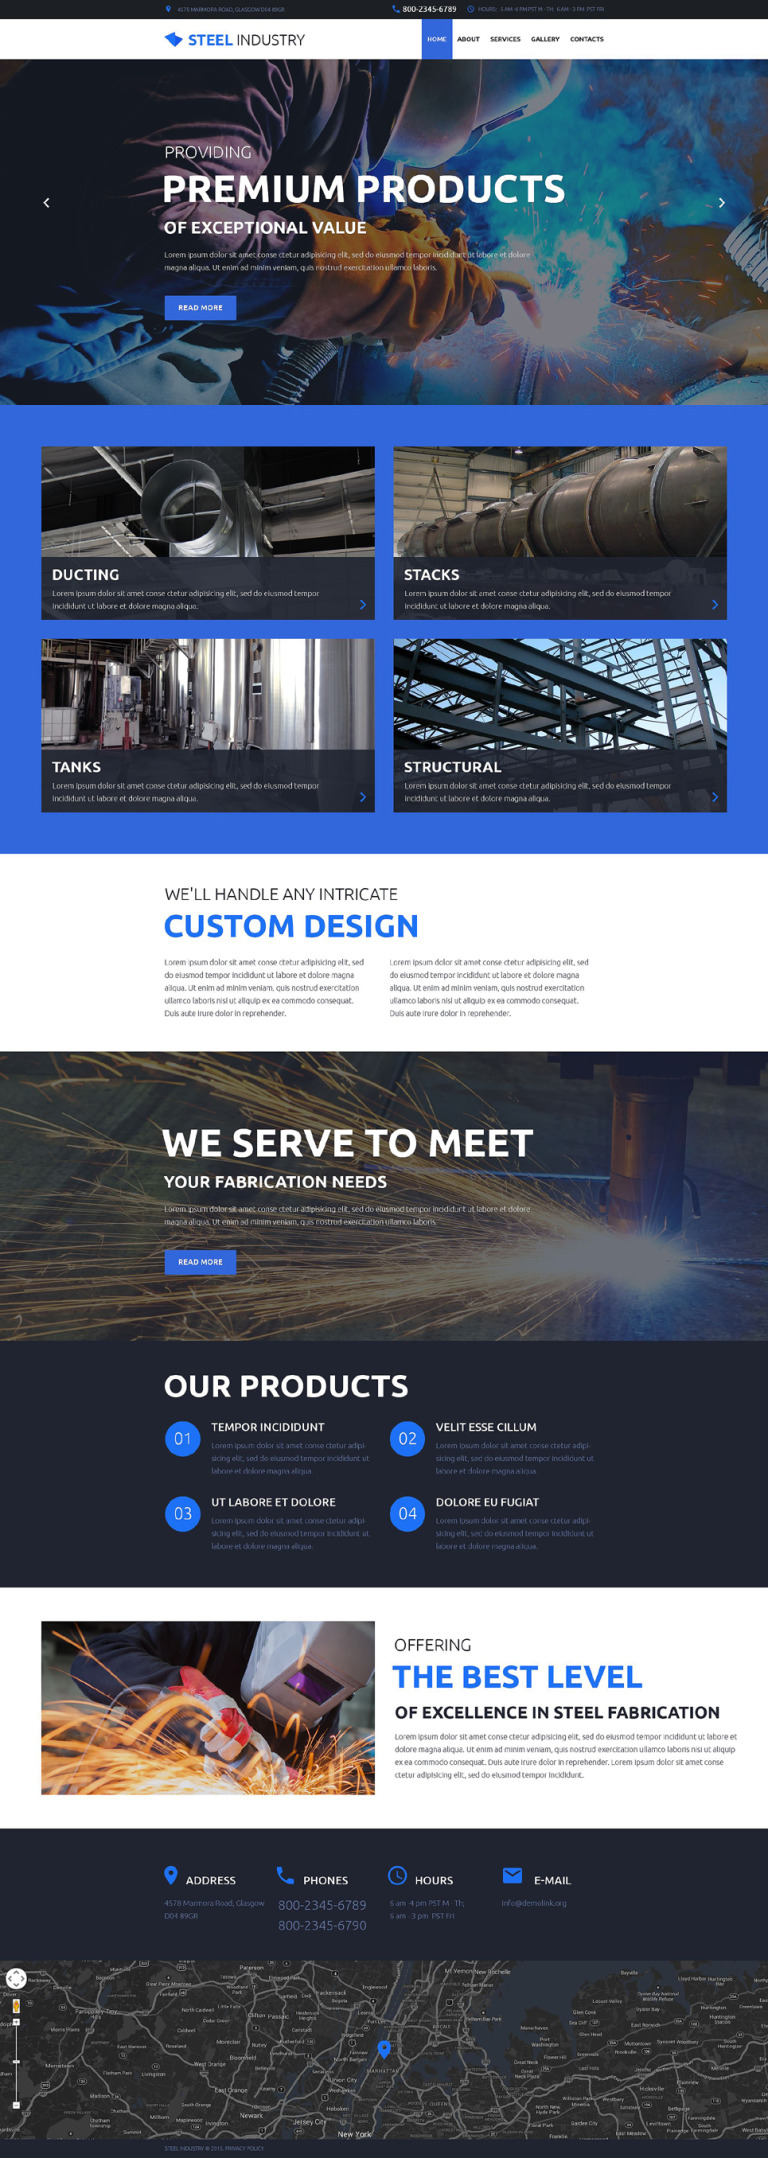 Steel Industry Website Template New Screenshots BIG